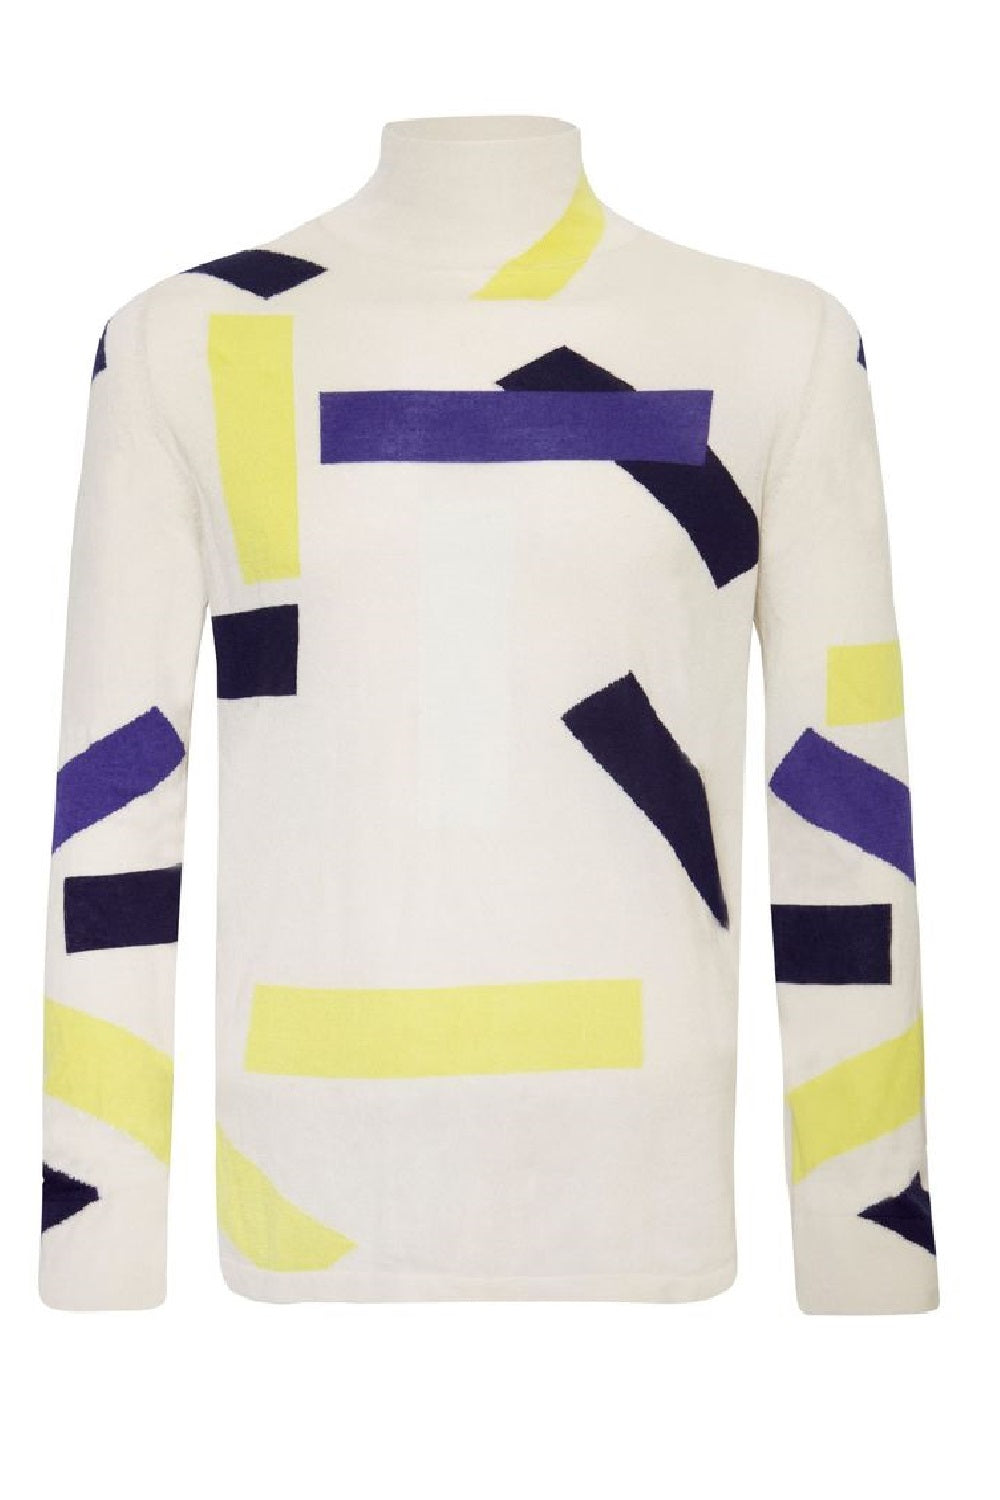 Unisex Cashmere Block Turtle Neck Cream